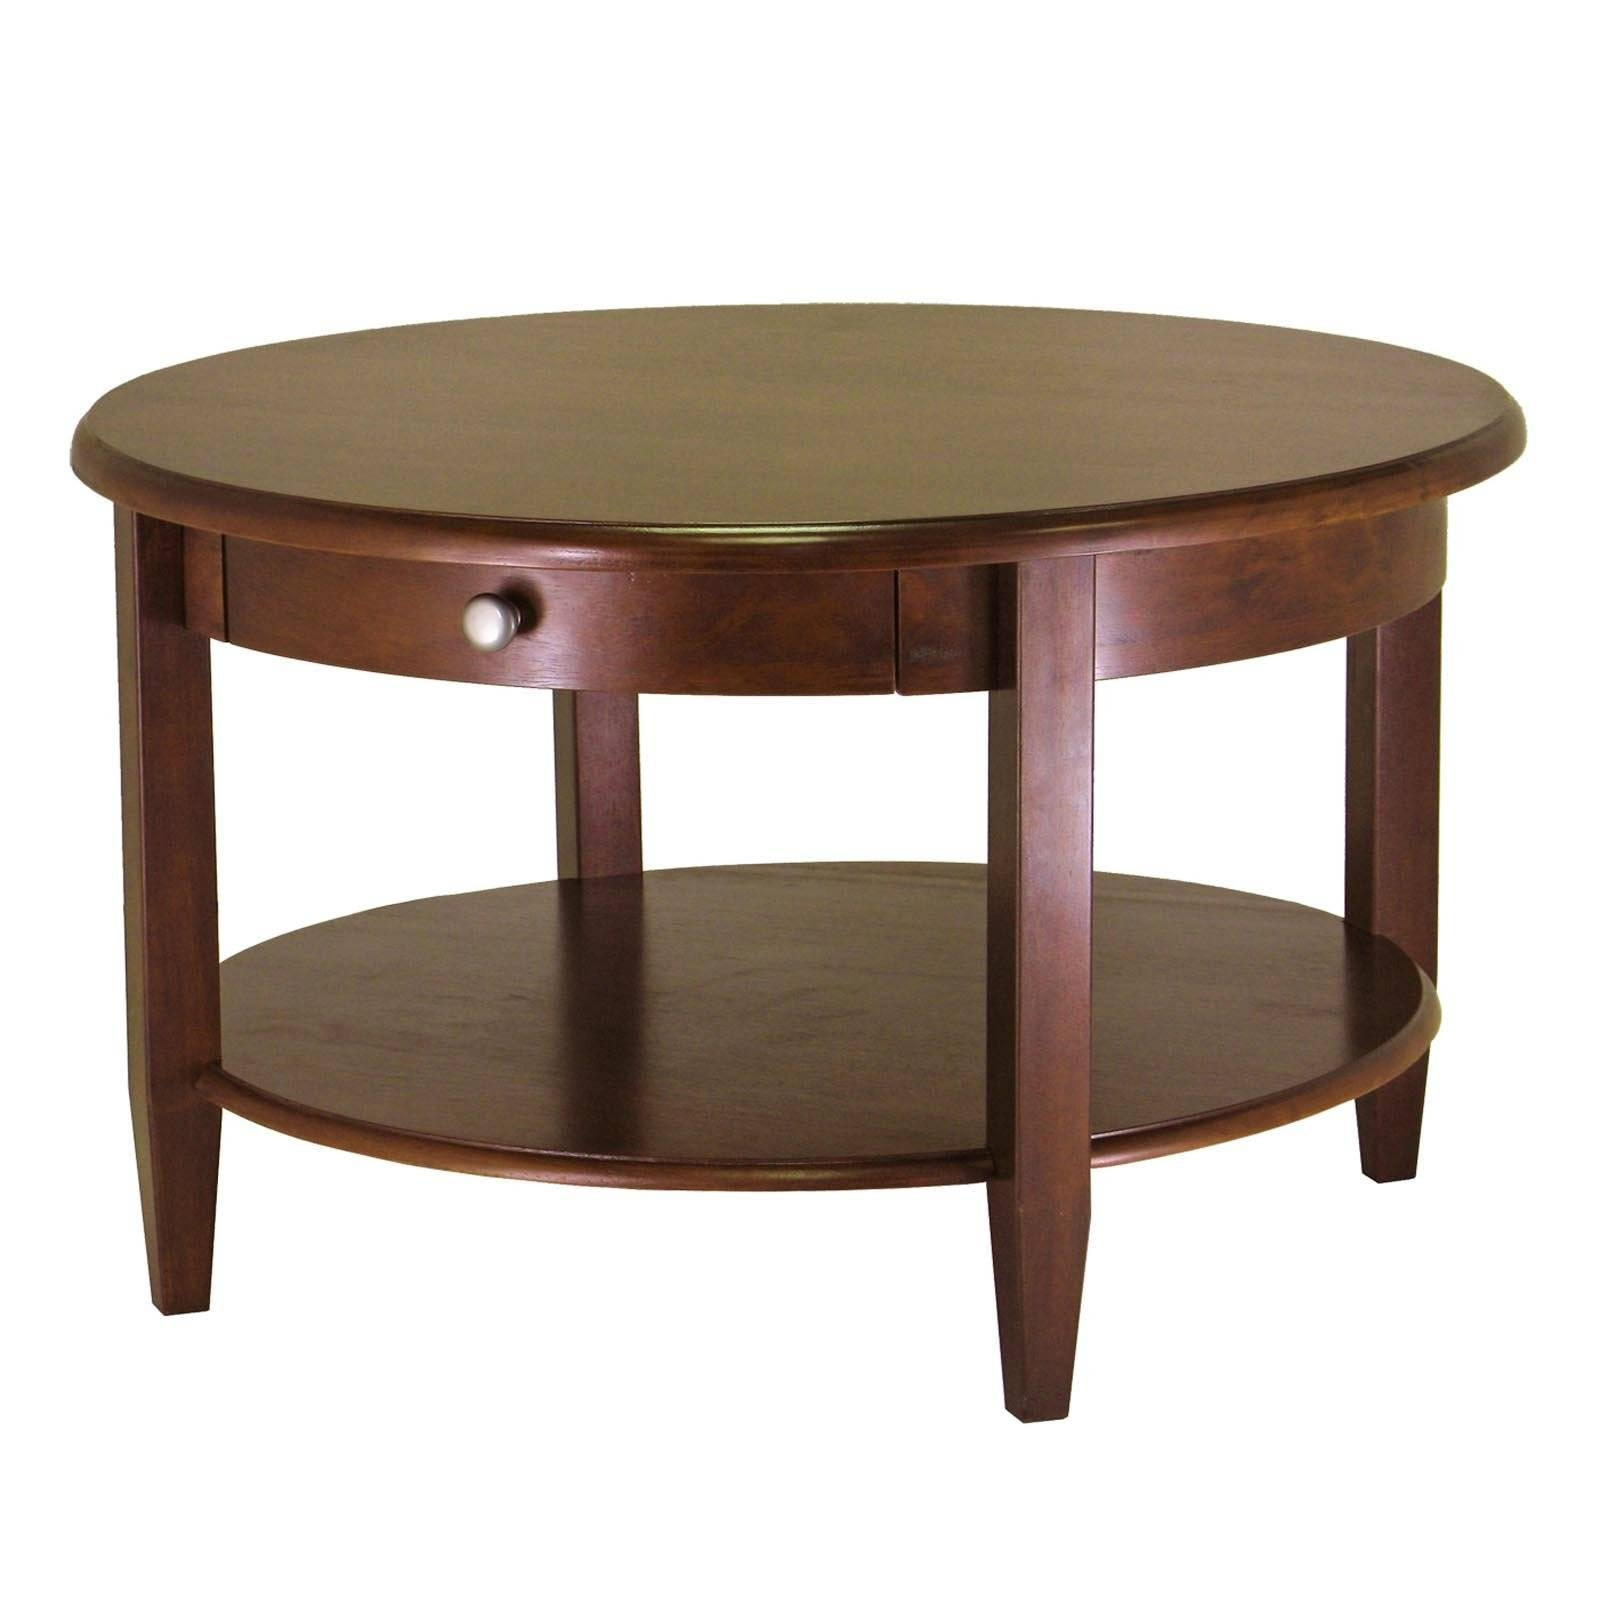 Round Coffee Table Contemporary Wooden Coffee Tables Antique with Round Coffee Tables With Drawers (Image 21 of 30)